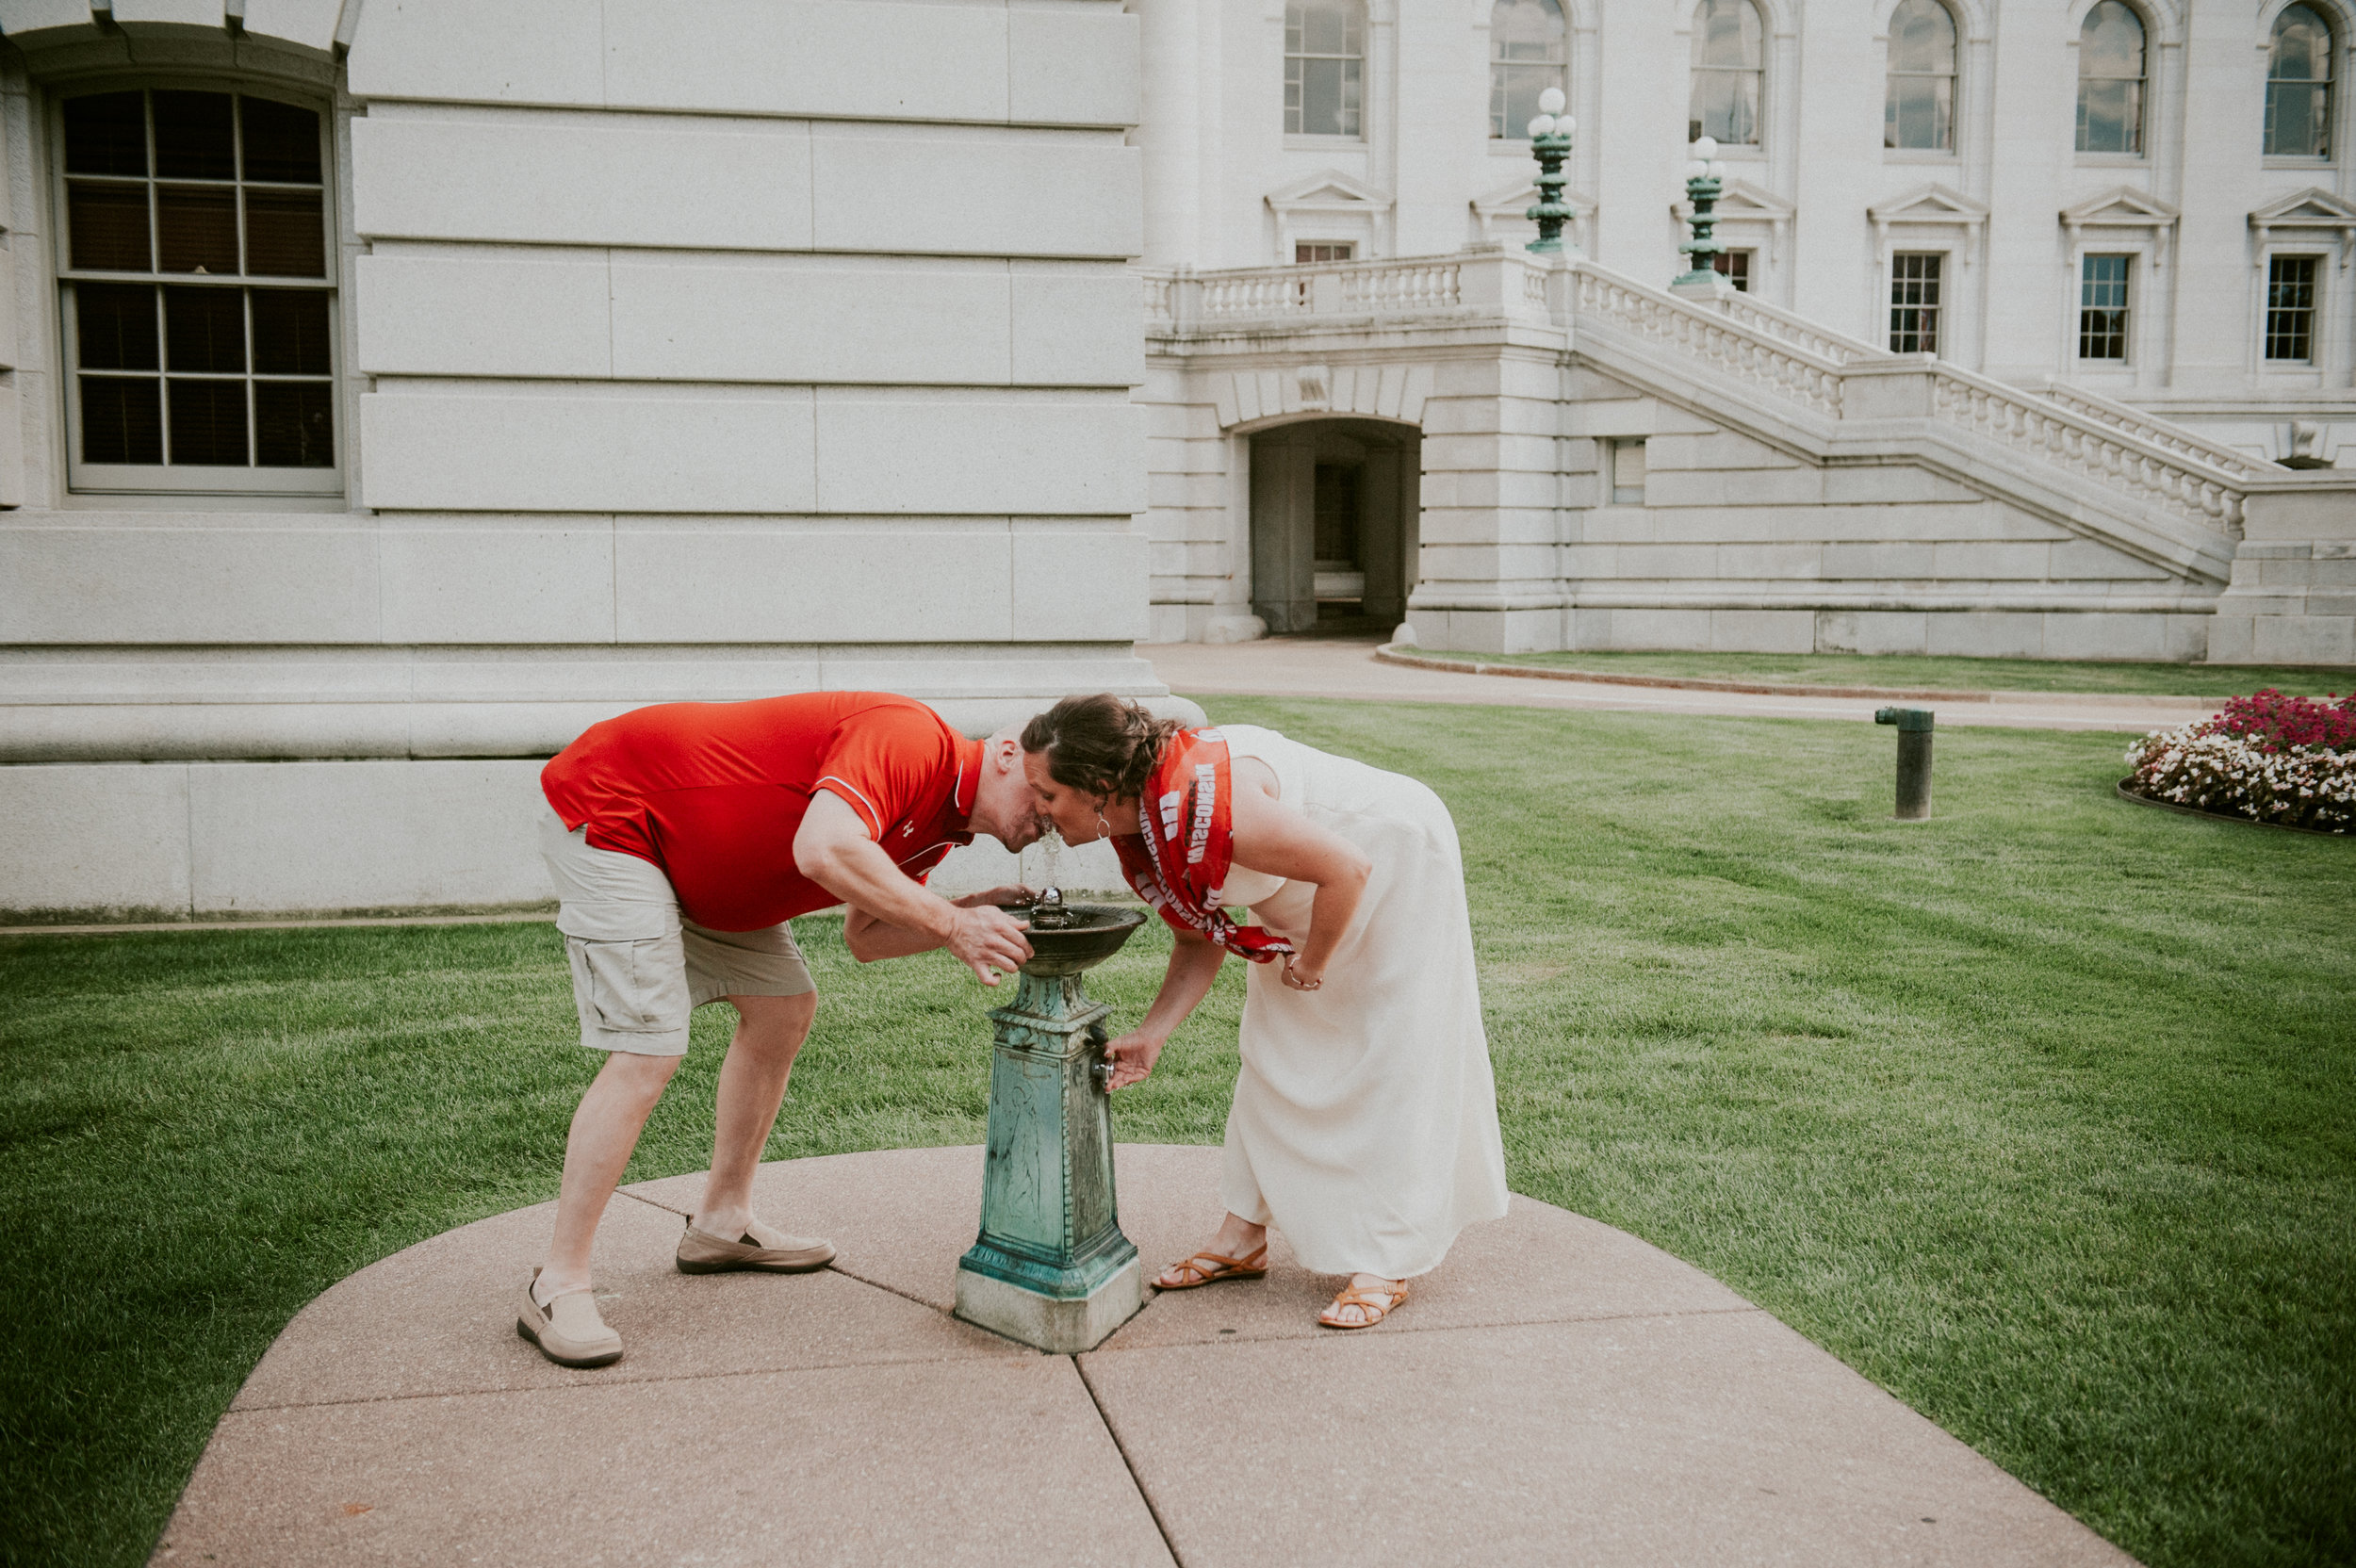 Sharing a sip of water at a historic fountain on campus